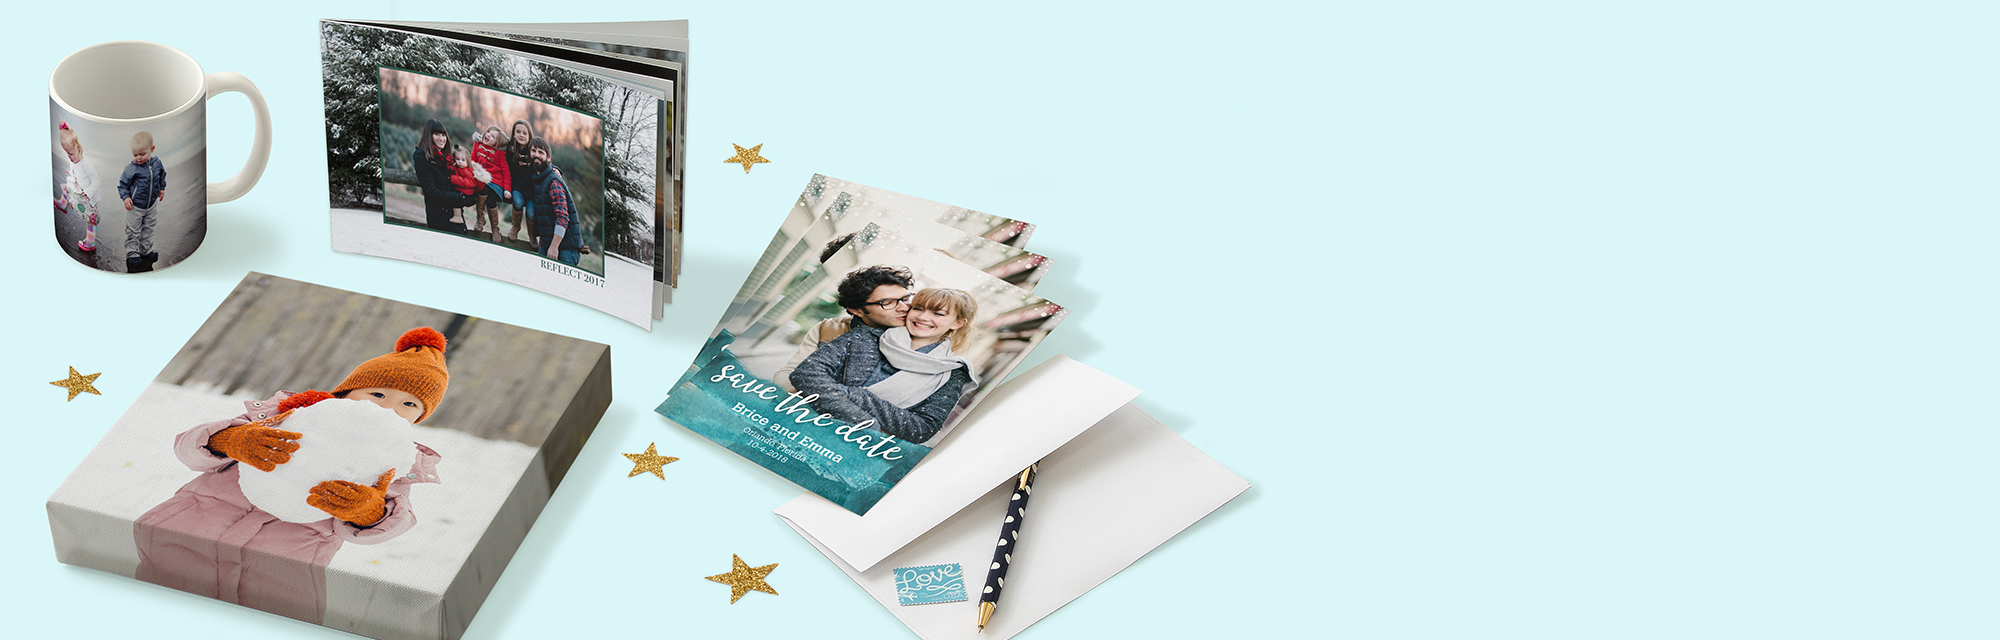 Online Photo Printing | Photo Cards | Photo Books | Photo Canvases ...